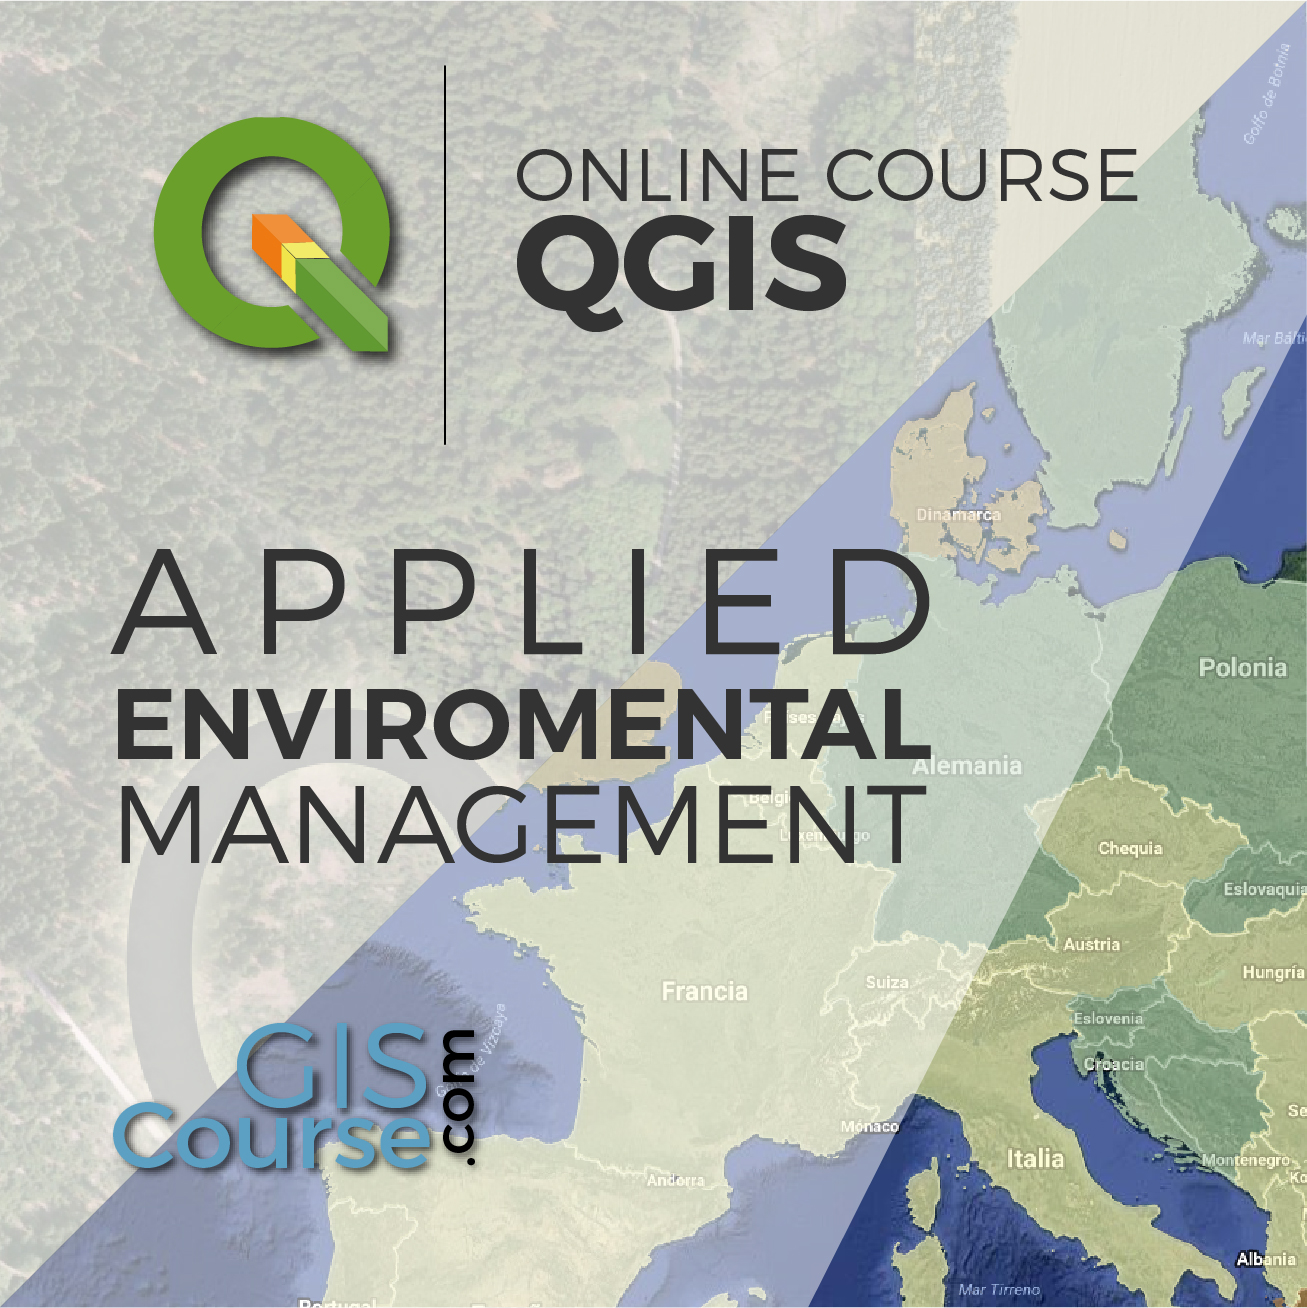 QGIS GIS Course Applied to Environmental Management